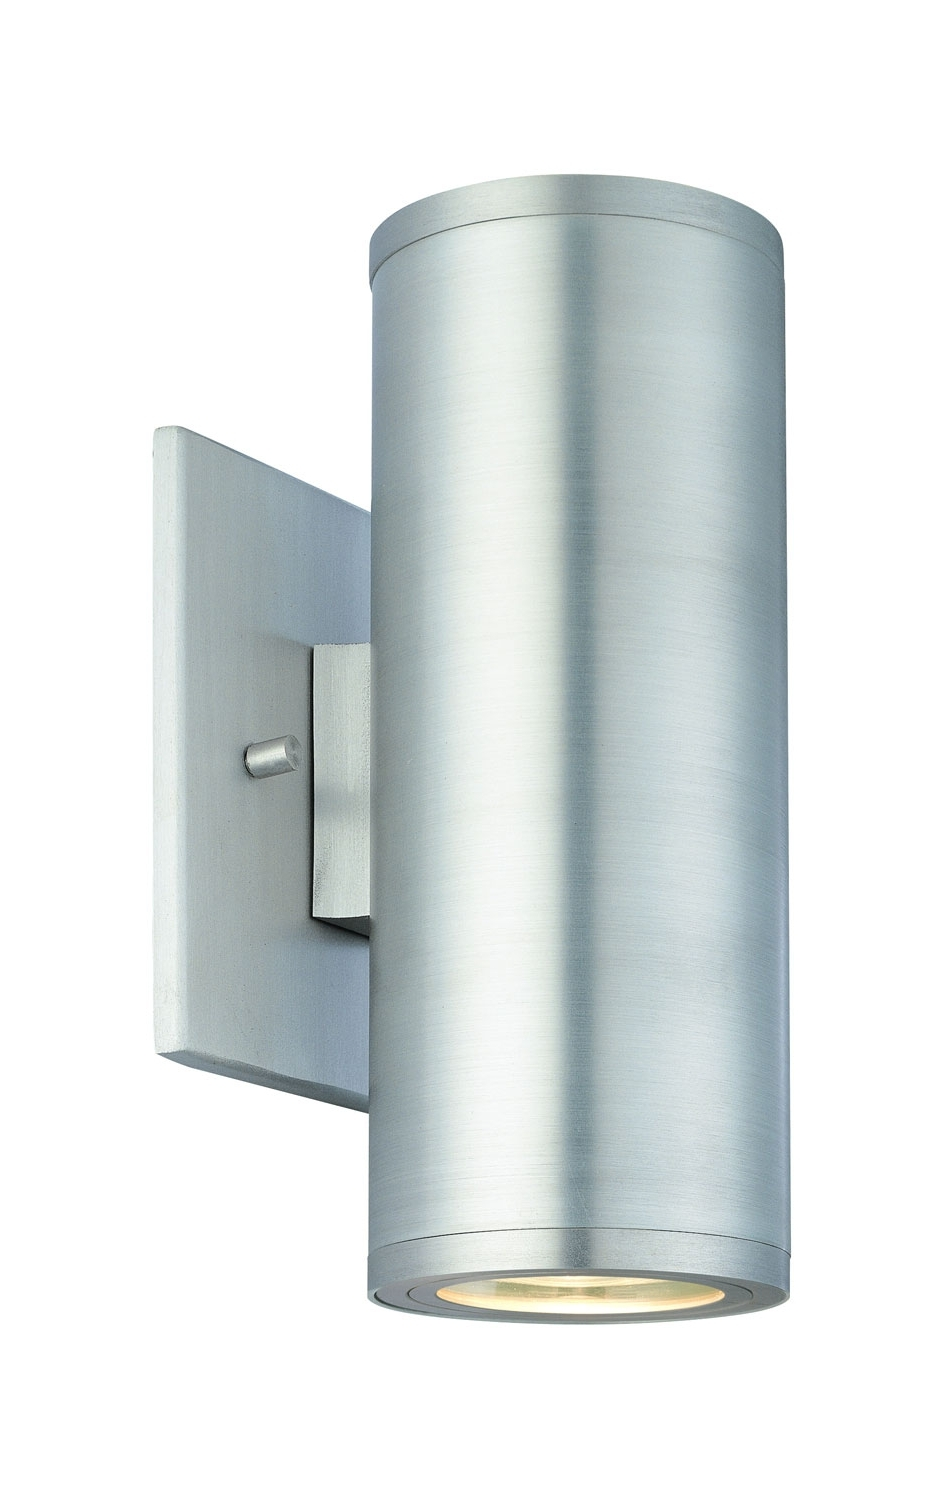 Light : Exterior Wall Mounted Light Fixtures Commercial Photo In Famous Outdoor Wall Hung Lights (View 8 of 20)